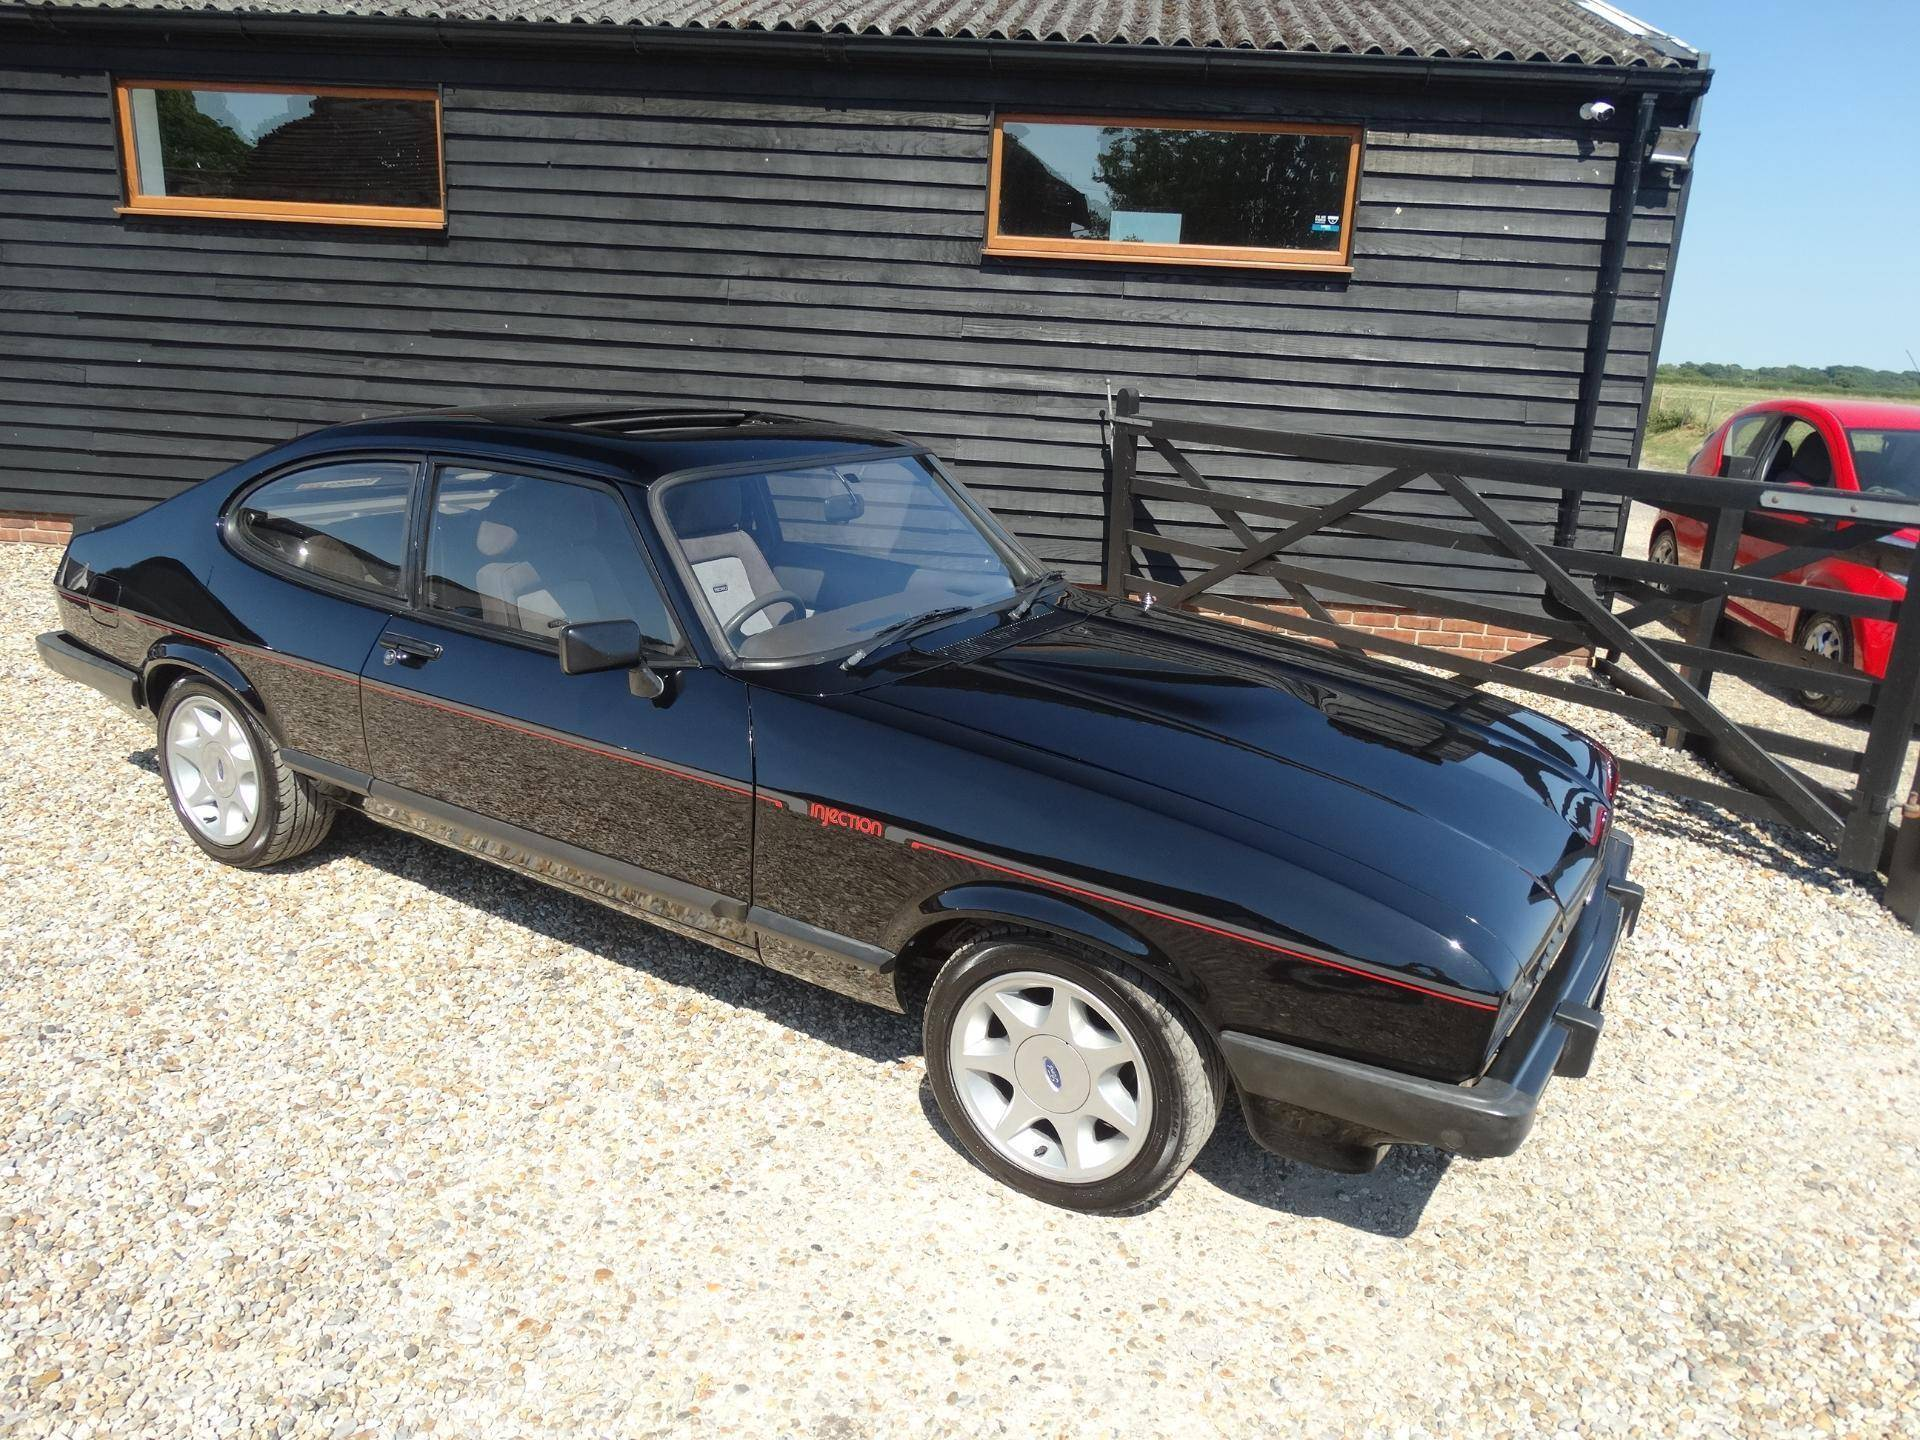 for sale ford capri 2 8i 1984 offered for gbp 16 450. Black Bedroom Furniture Sets. Home Design Ideas